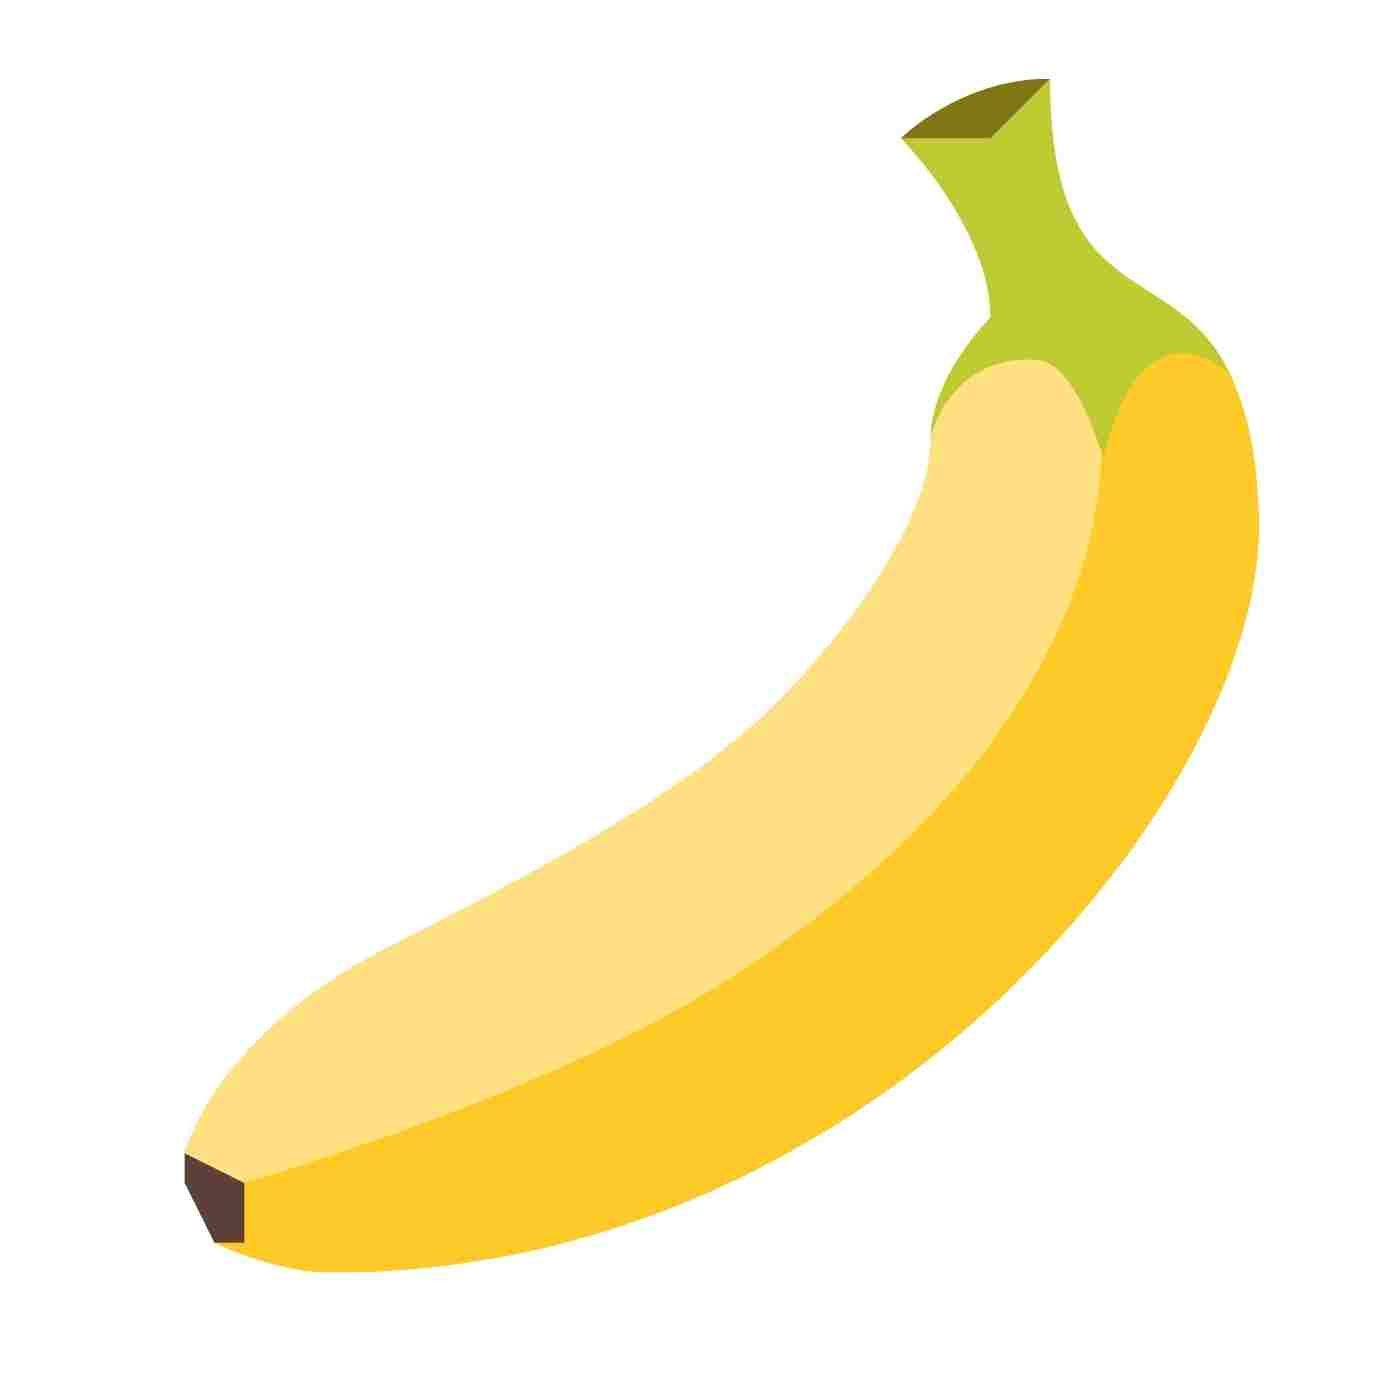 Should we give gifts to clients after sessions - like bananas